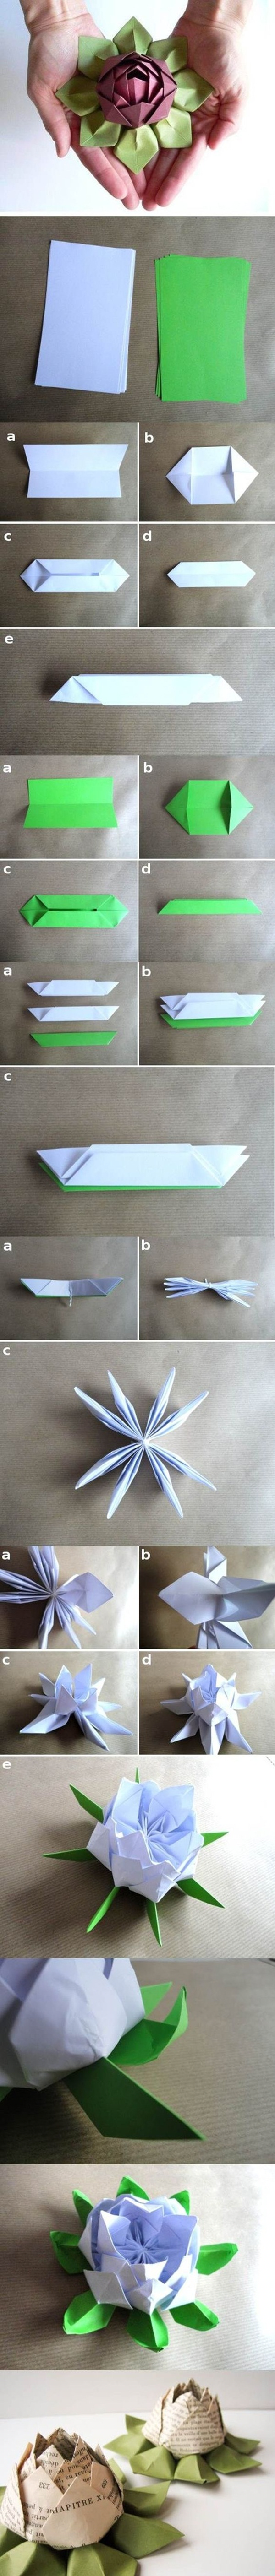 easy-origami-for-kids41